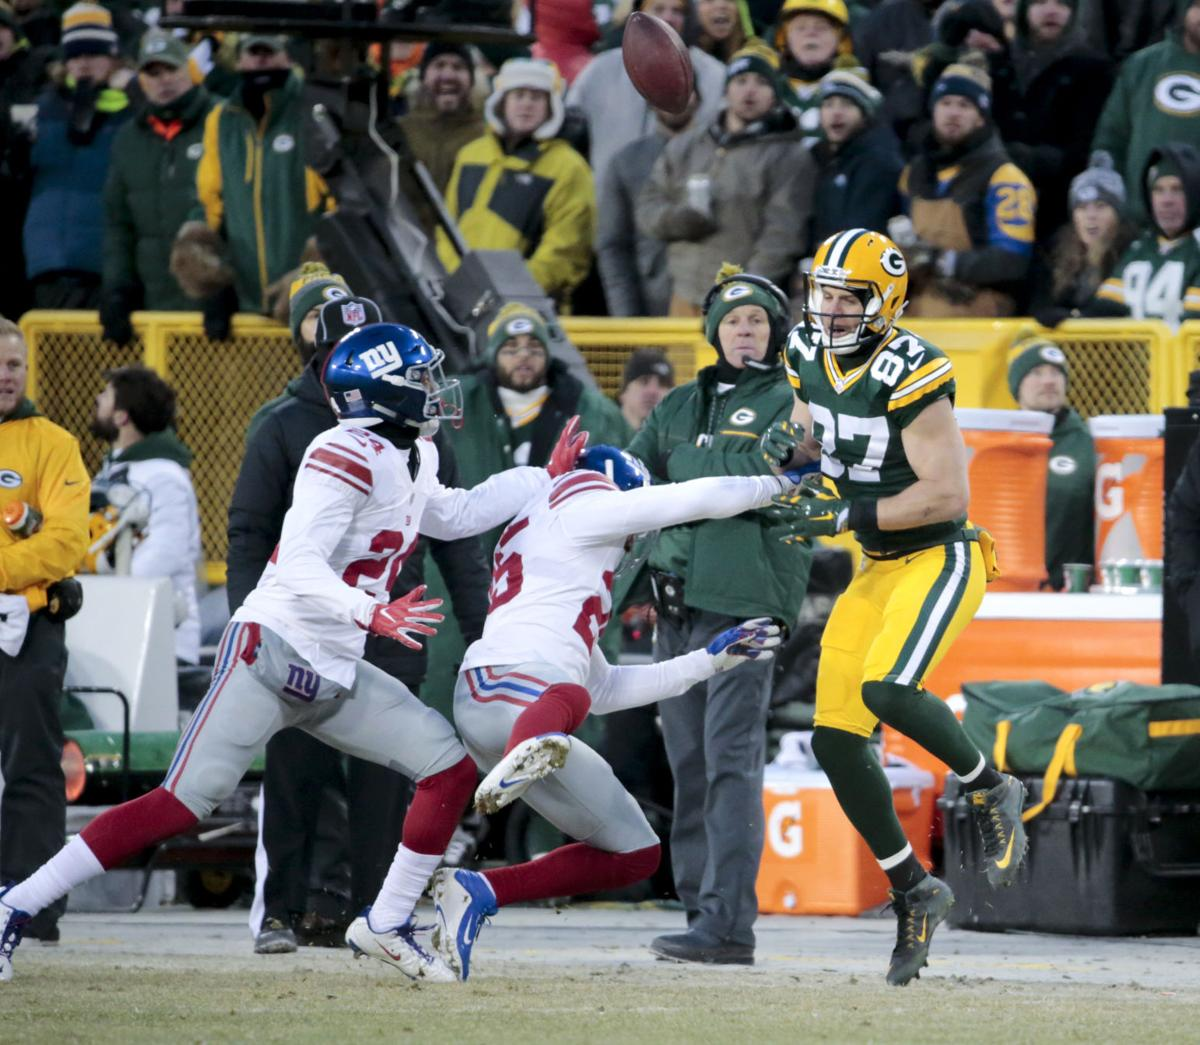 Jordy Nelson pass where ribs injured, State Journal photo